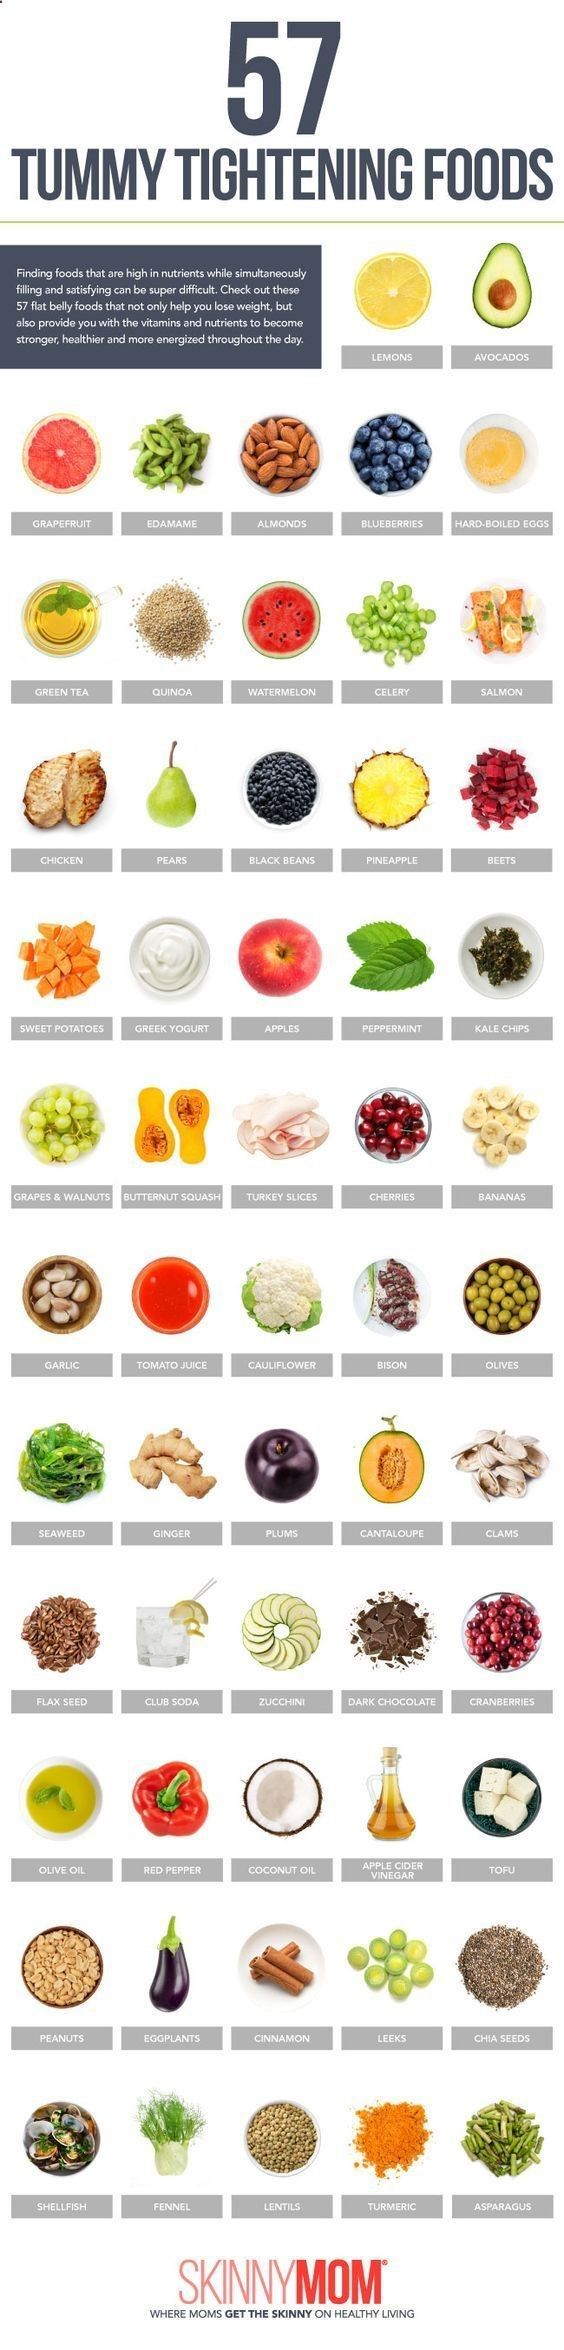 Fat Burning 21 Minutes a Day - Eat these 57 tummy-tightening foods every day! - Using this 21-Minute Method, You CAN Eat Carbs, Enjoy Your Favorite Foods, and STILL Burn Away A Bit Of Belly Fat Each and Every Day